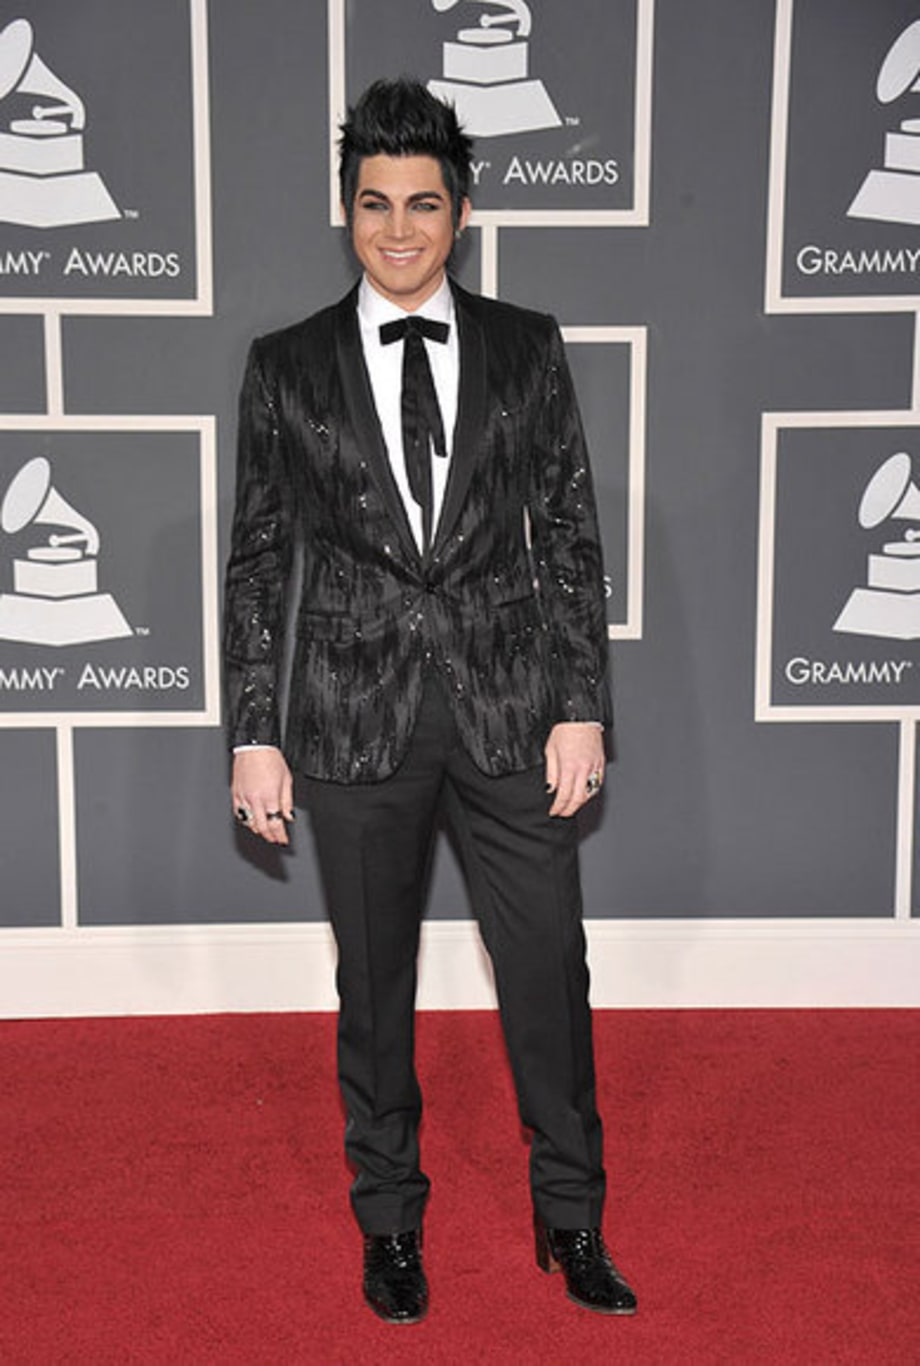 Grammy Fashion 2010: Stars Walk the Red Carpet on Music's Biggest Night